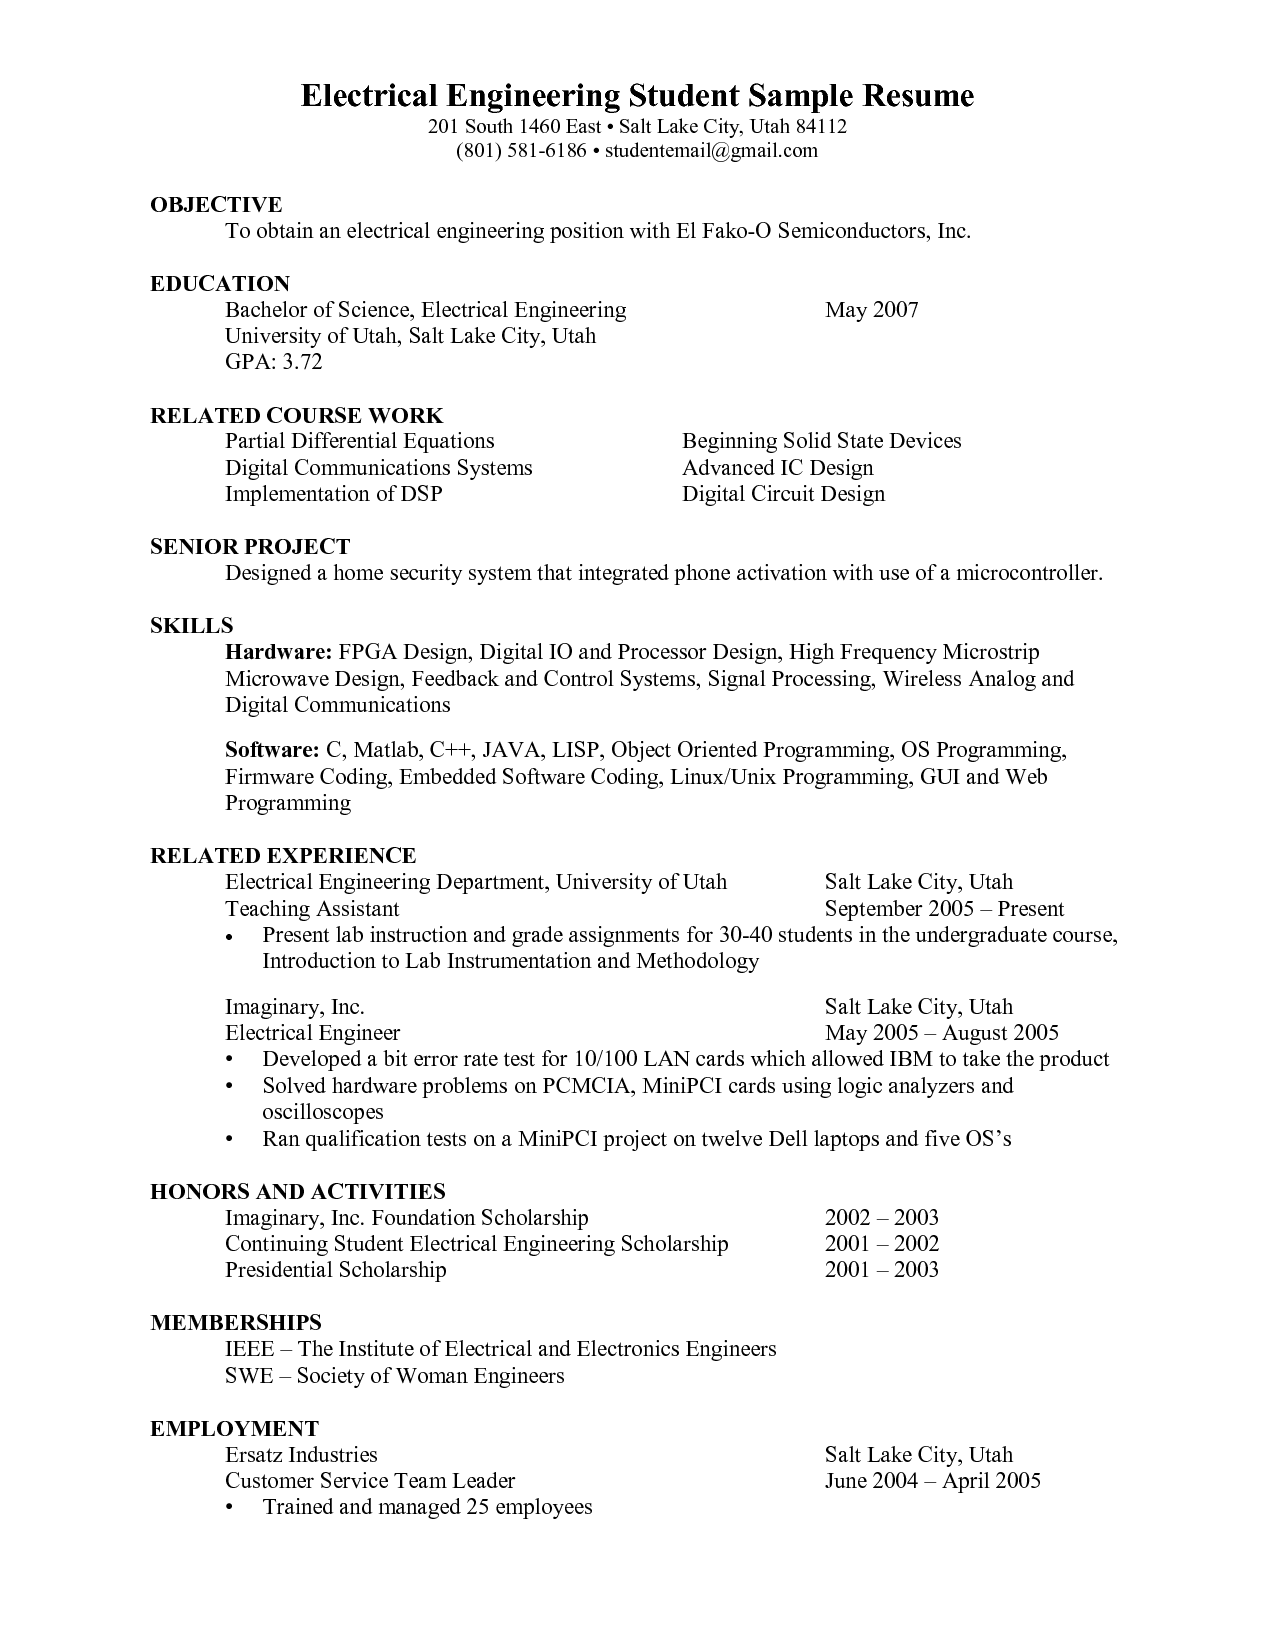 Resume Examples For Electronics Engineering Students    Http://www.resumecareer.info  Resume Examples Engineering